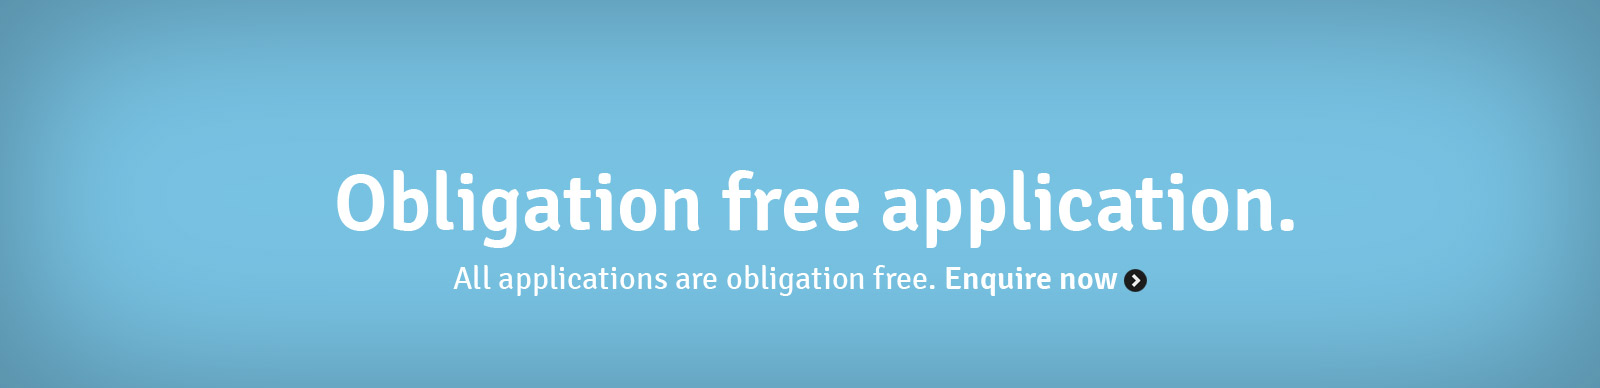 Obligation free application